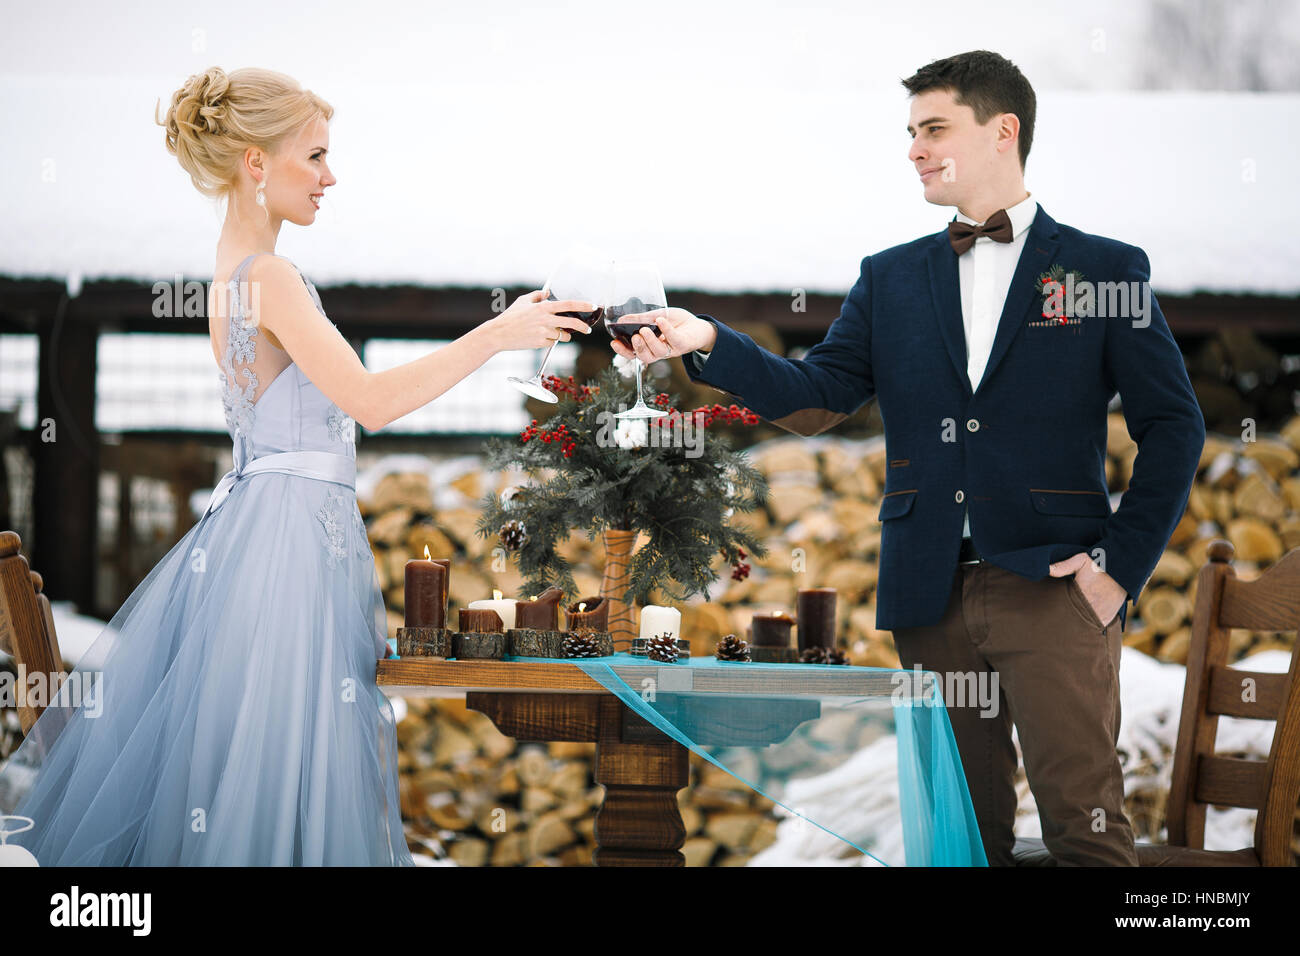 Winter wedding outdoor on firewood background. Bride and groom stand near table and clink glasses with wine. Beside - Stock Image